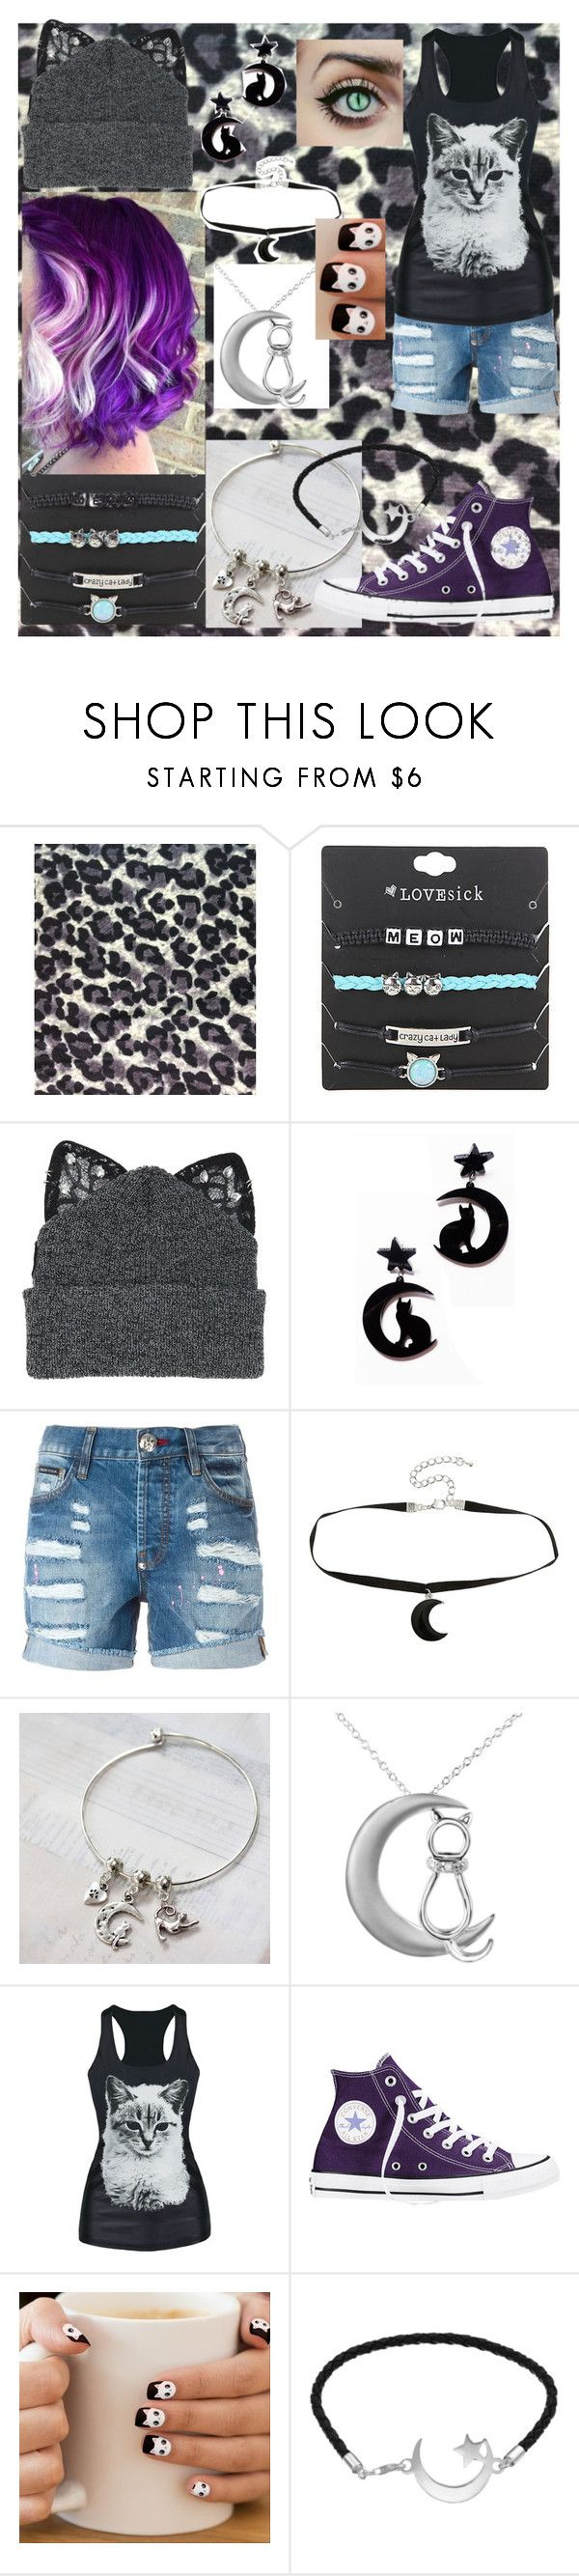 """""""#i'minMaryland!!!"""" by catthorn ❤ liked on Polyvore featuring interior, interiors, interior design, home, home decor, interior decorating, Silver Spoon Attire, Philipp Plein, ASPCA and Converse"""